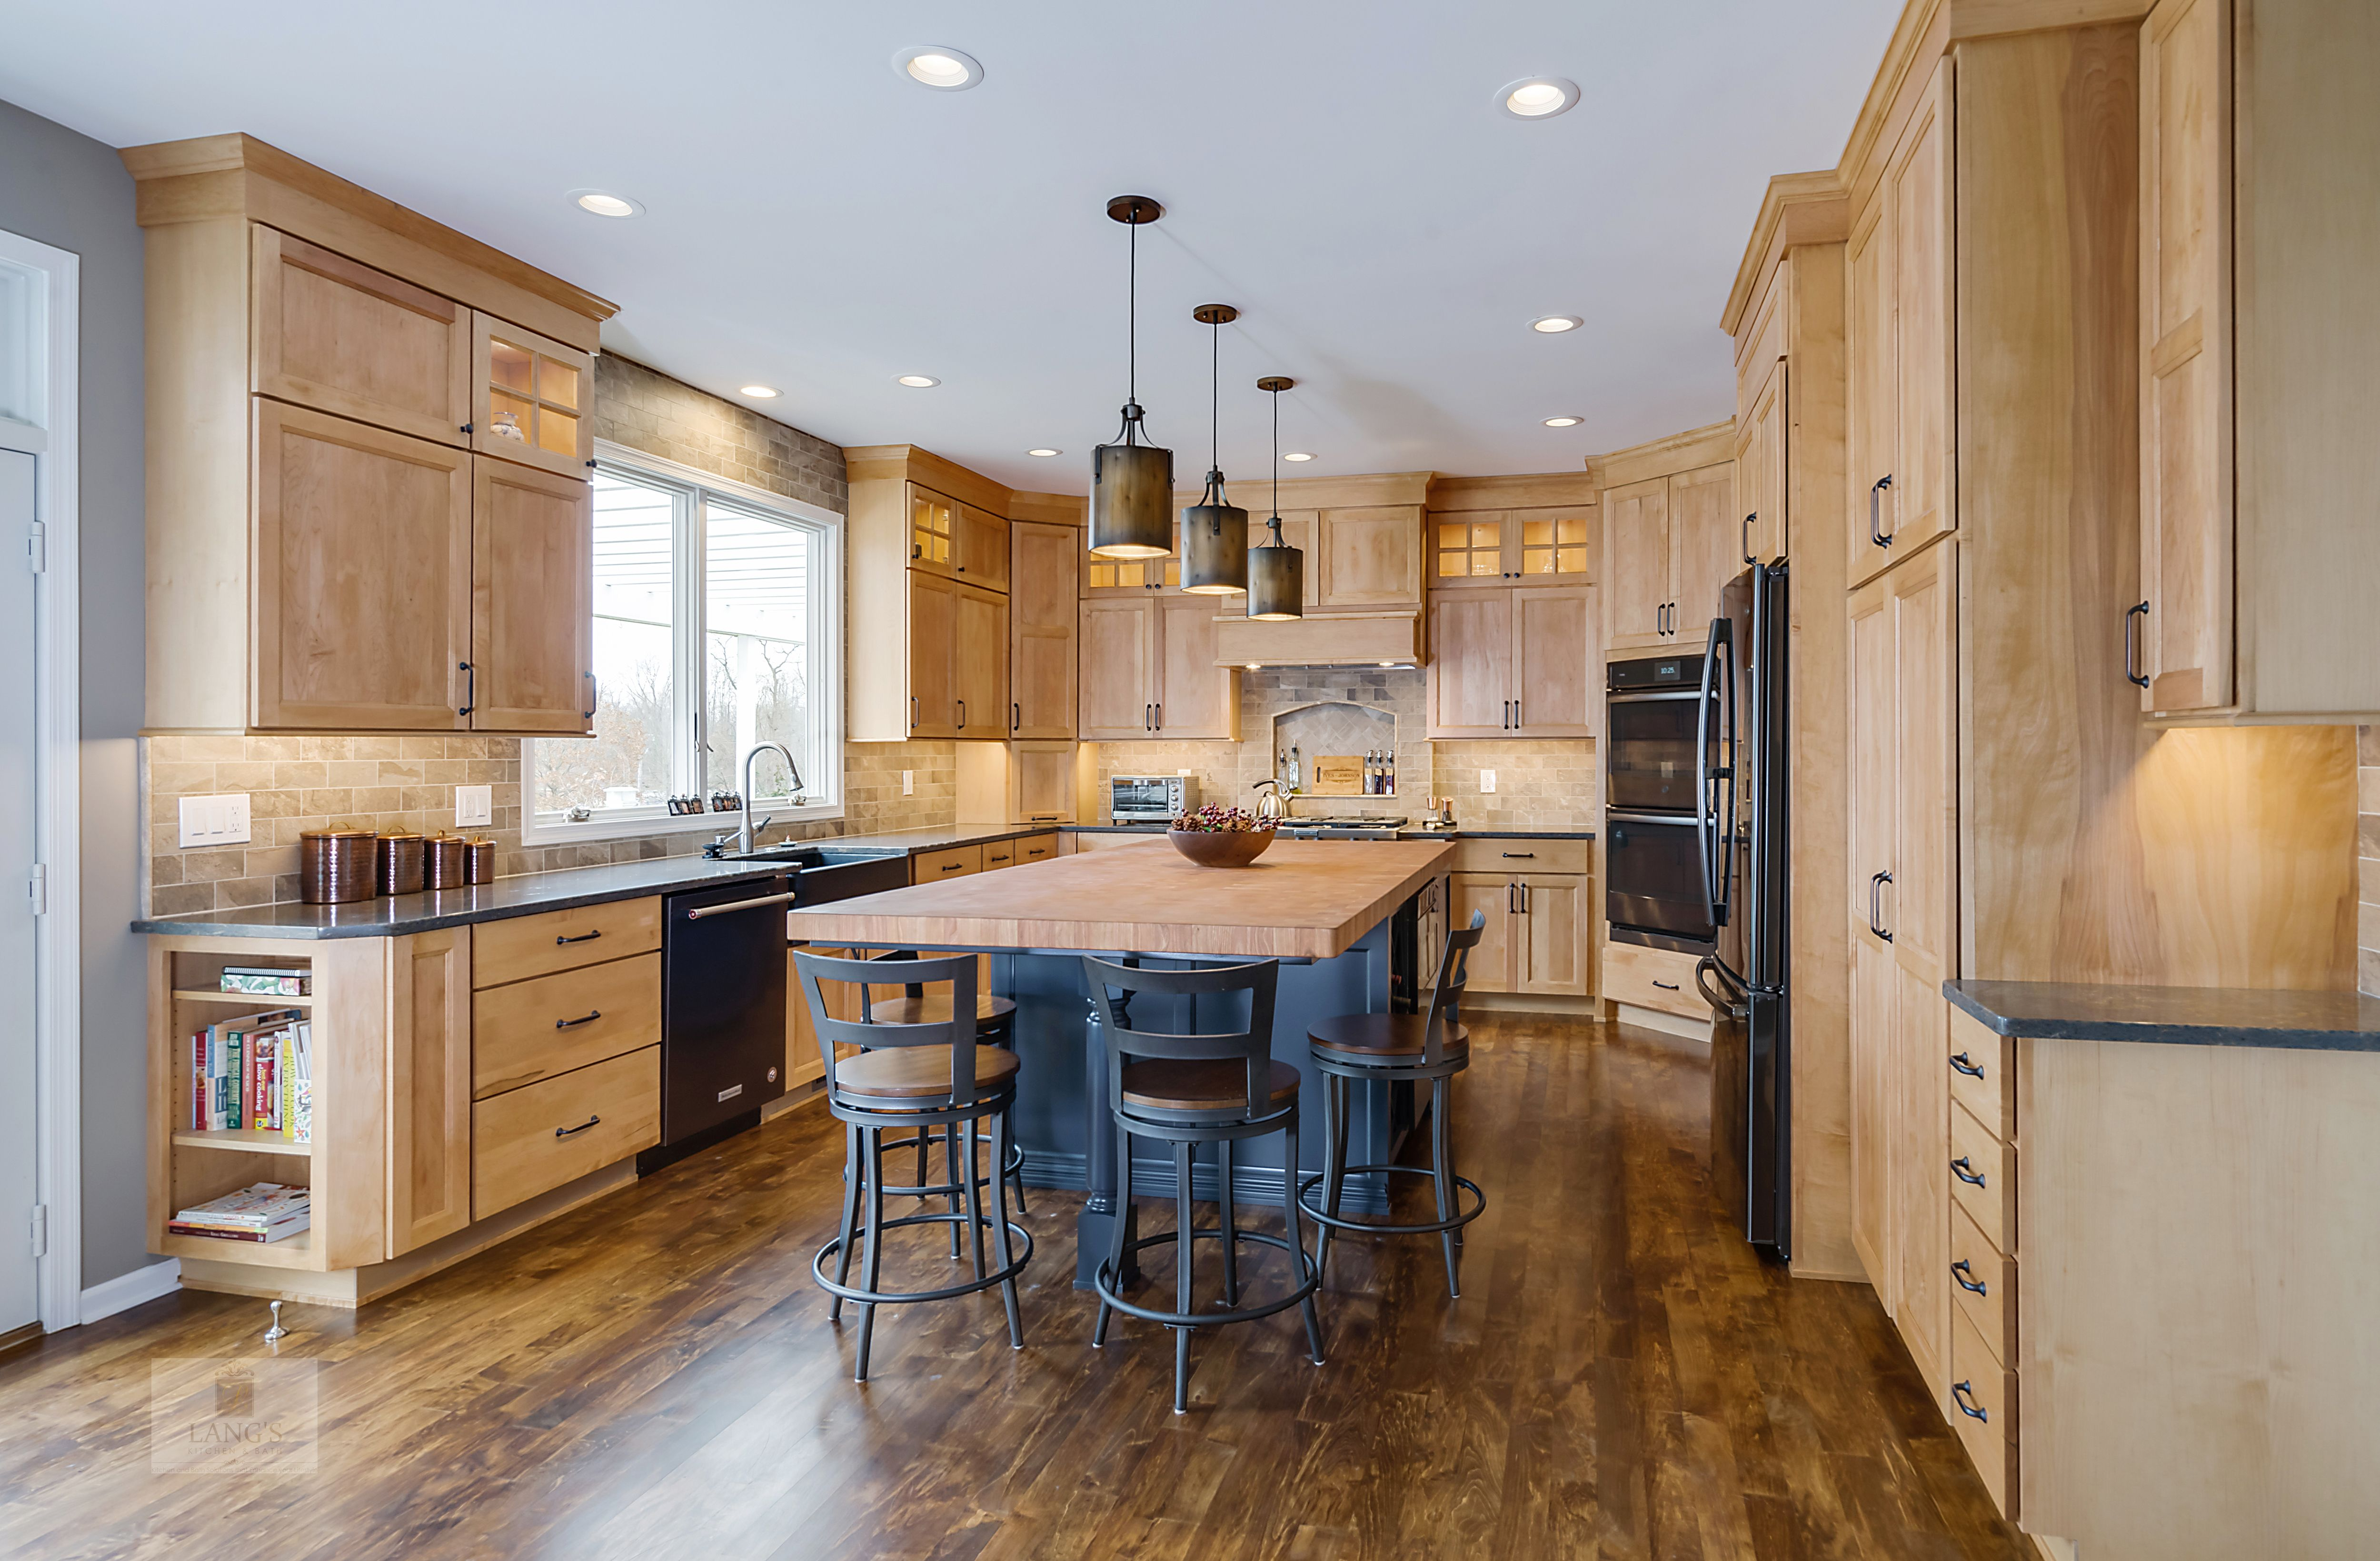 This Amazing Traditional Kitchen Design In Yardley Pa Incorporates Medium Wood Fini Eclectic Kitchen Design Popular Kitchen Designs Kitchen Inspiration Design